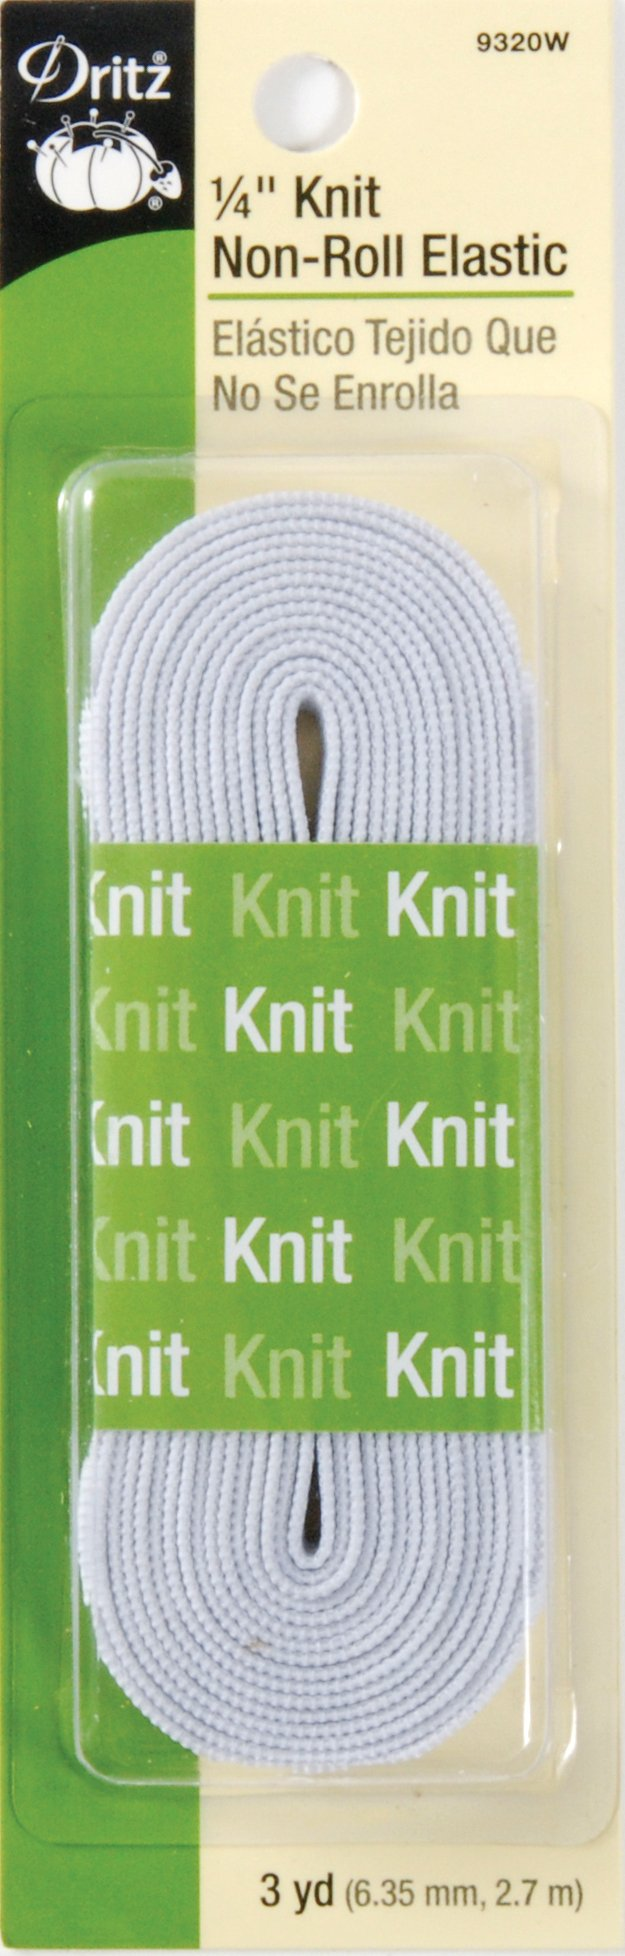 Dritz 9320W Non-Roll Knit Elastic, White, 1/4-Inch by 3-Yard